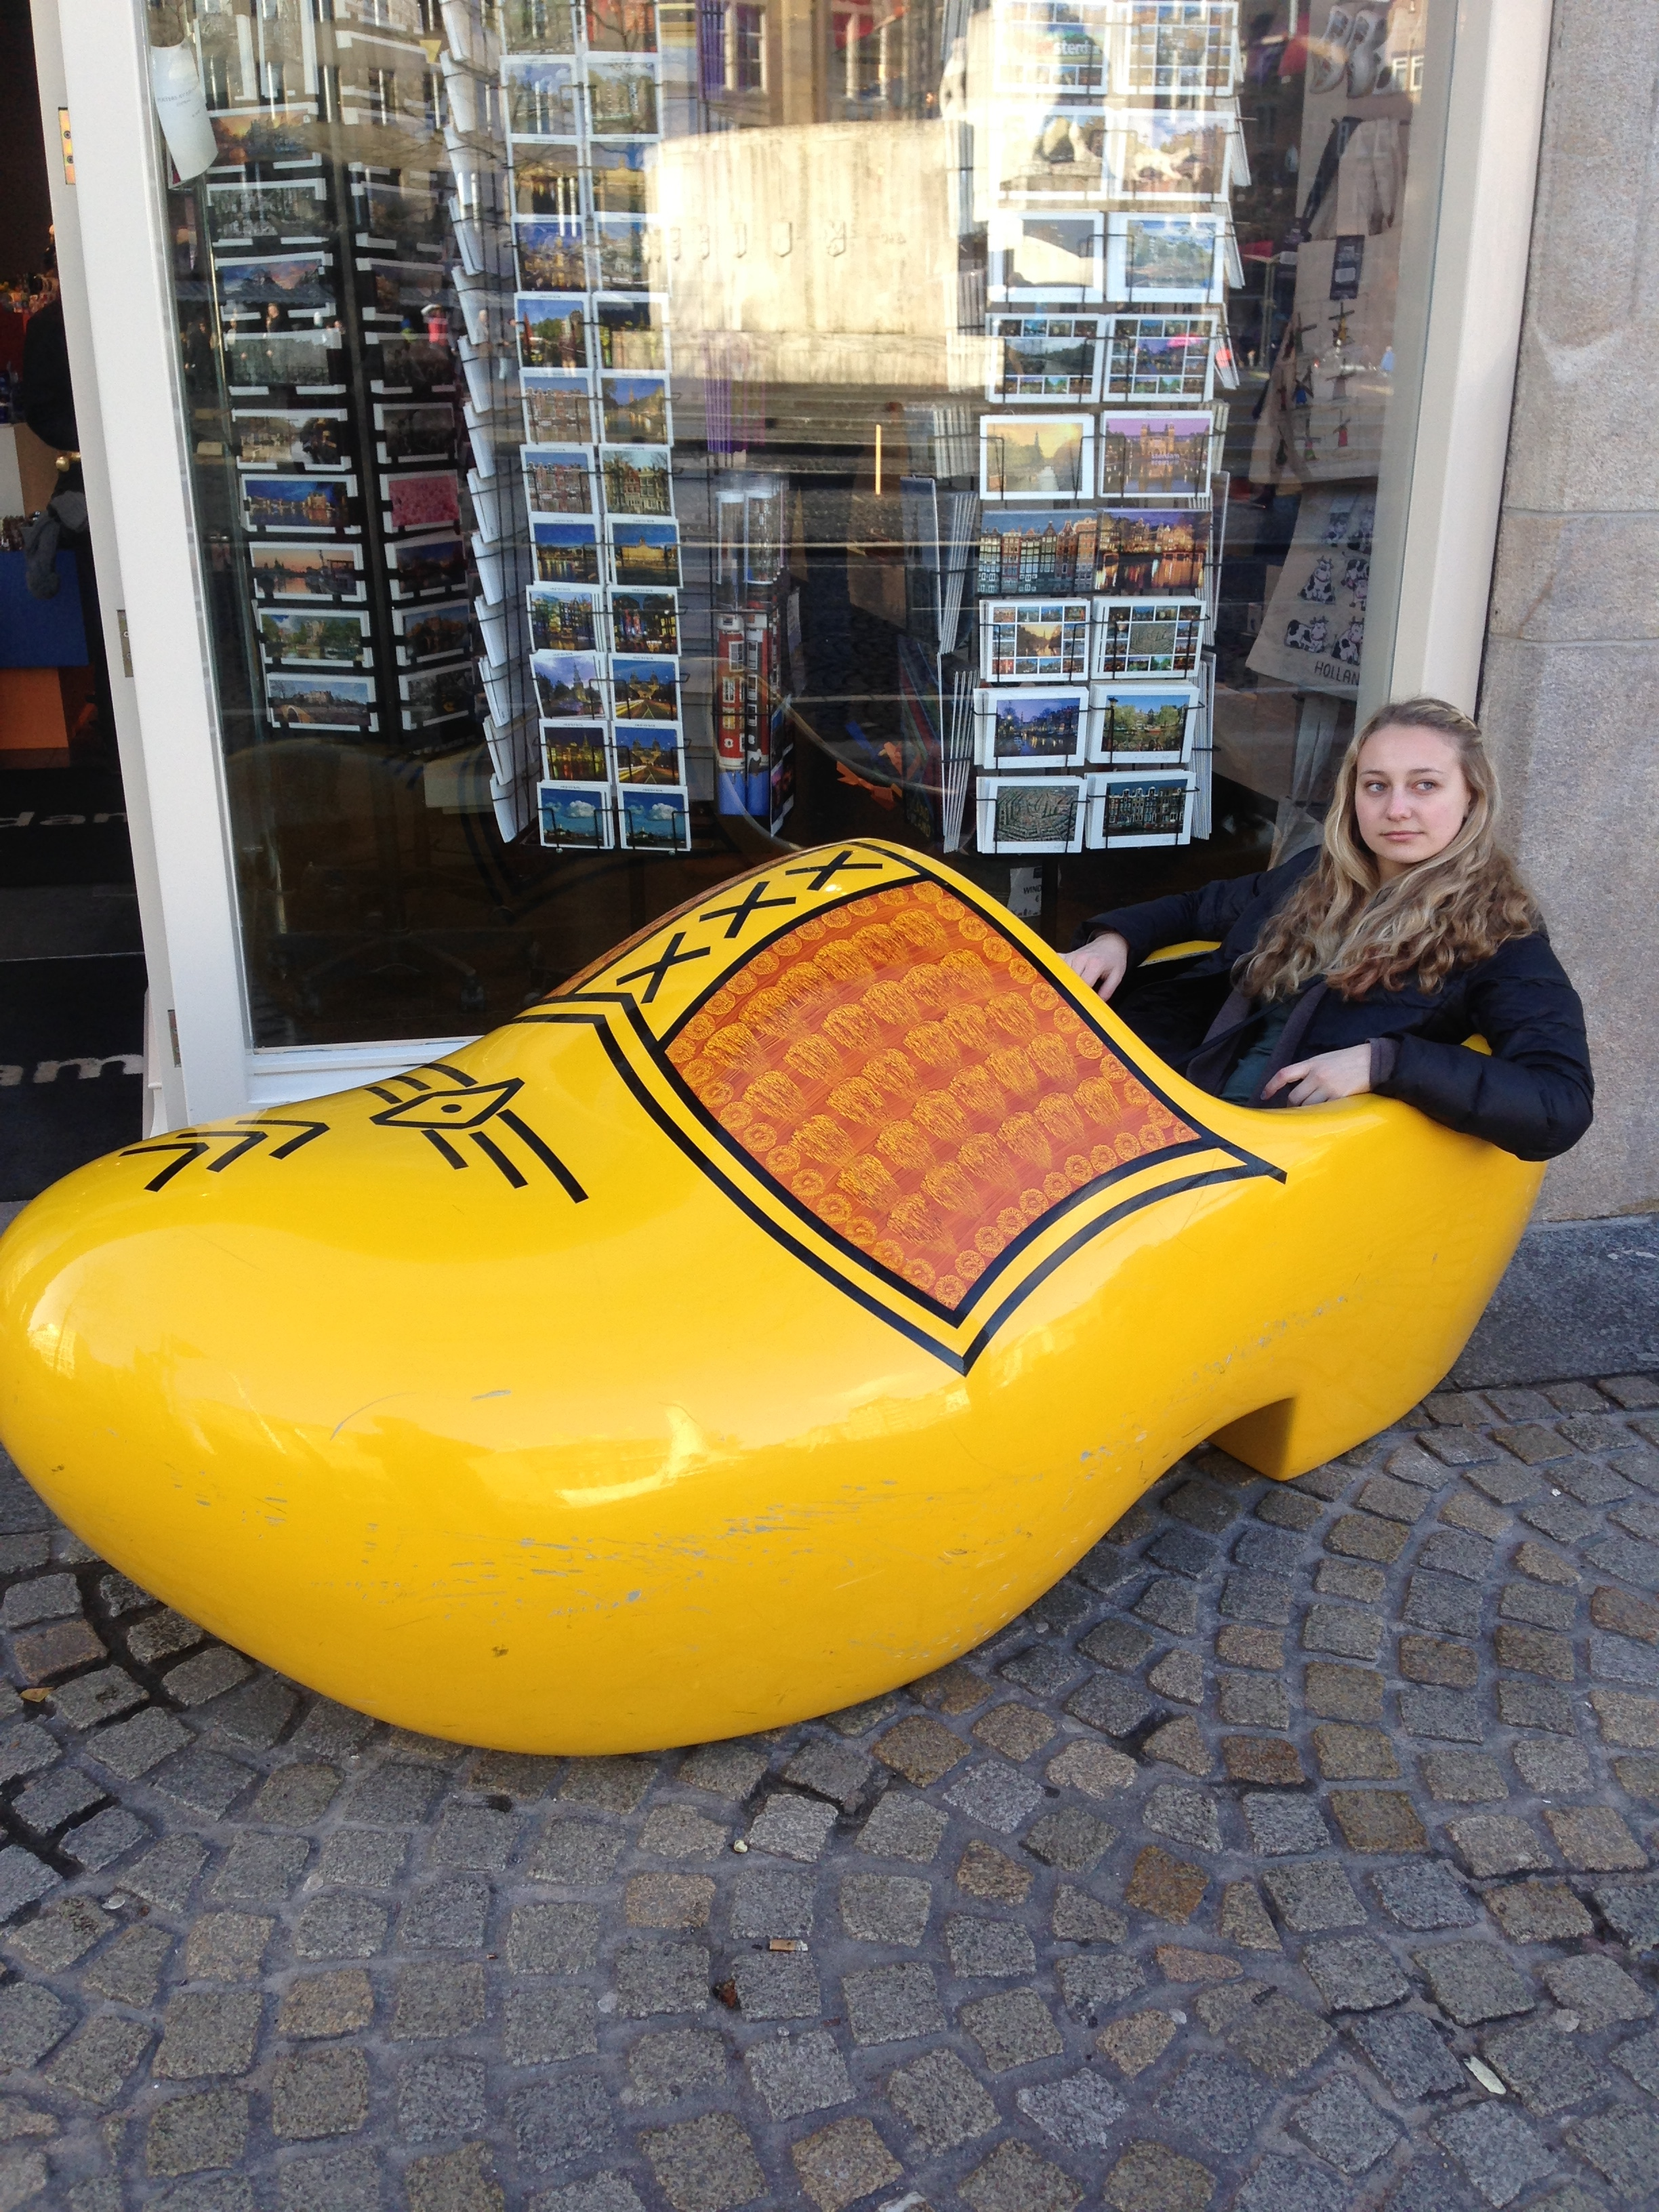 To leave you off, here is a picture of me chilling in a clog...